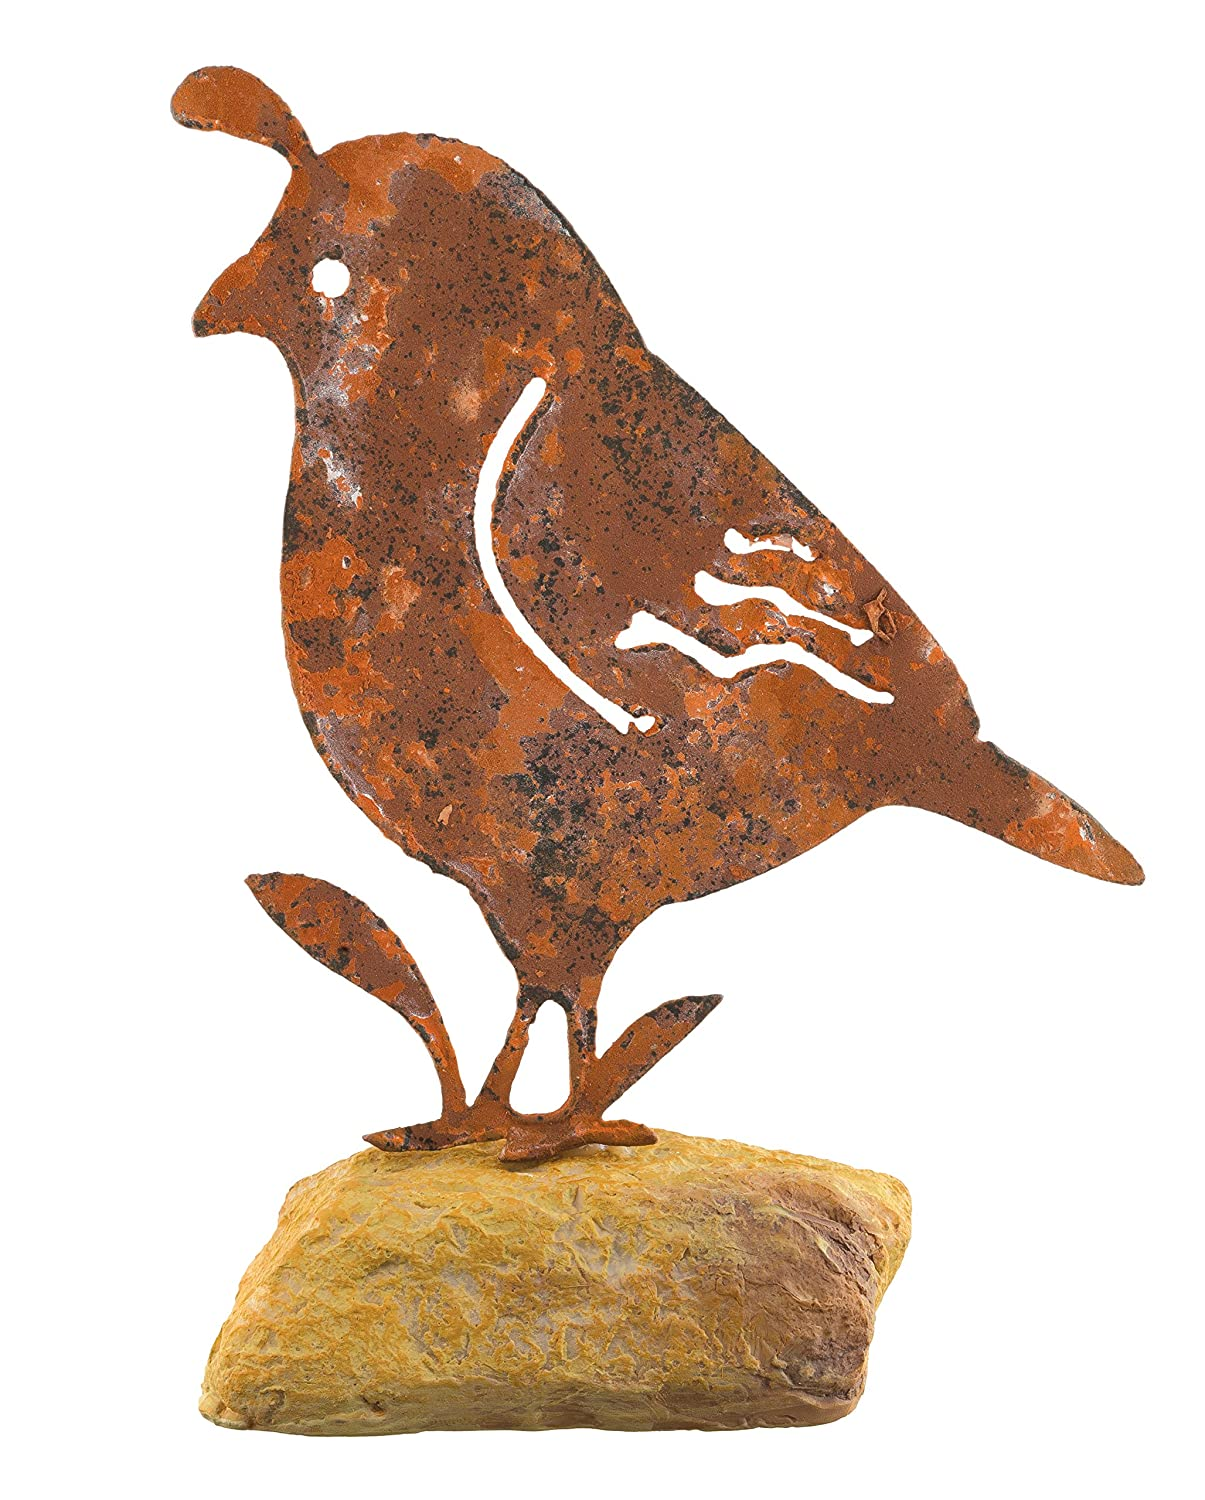 Regal Art & Gift Quail Rock Decor